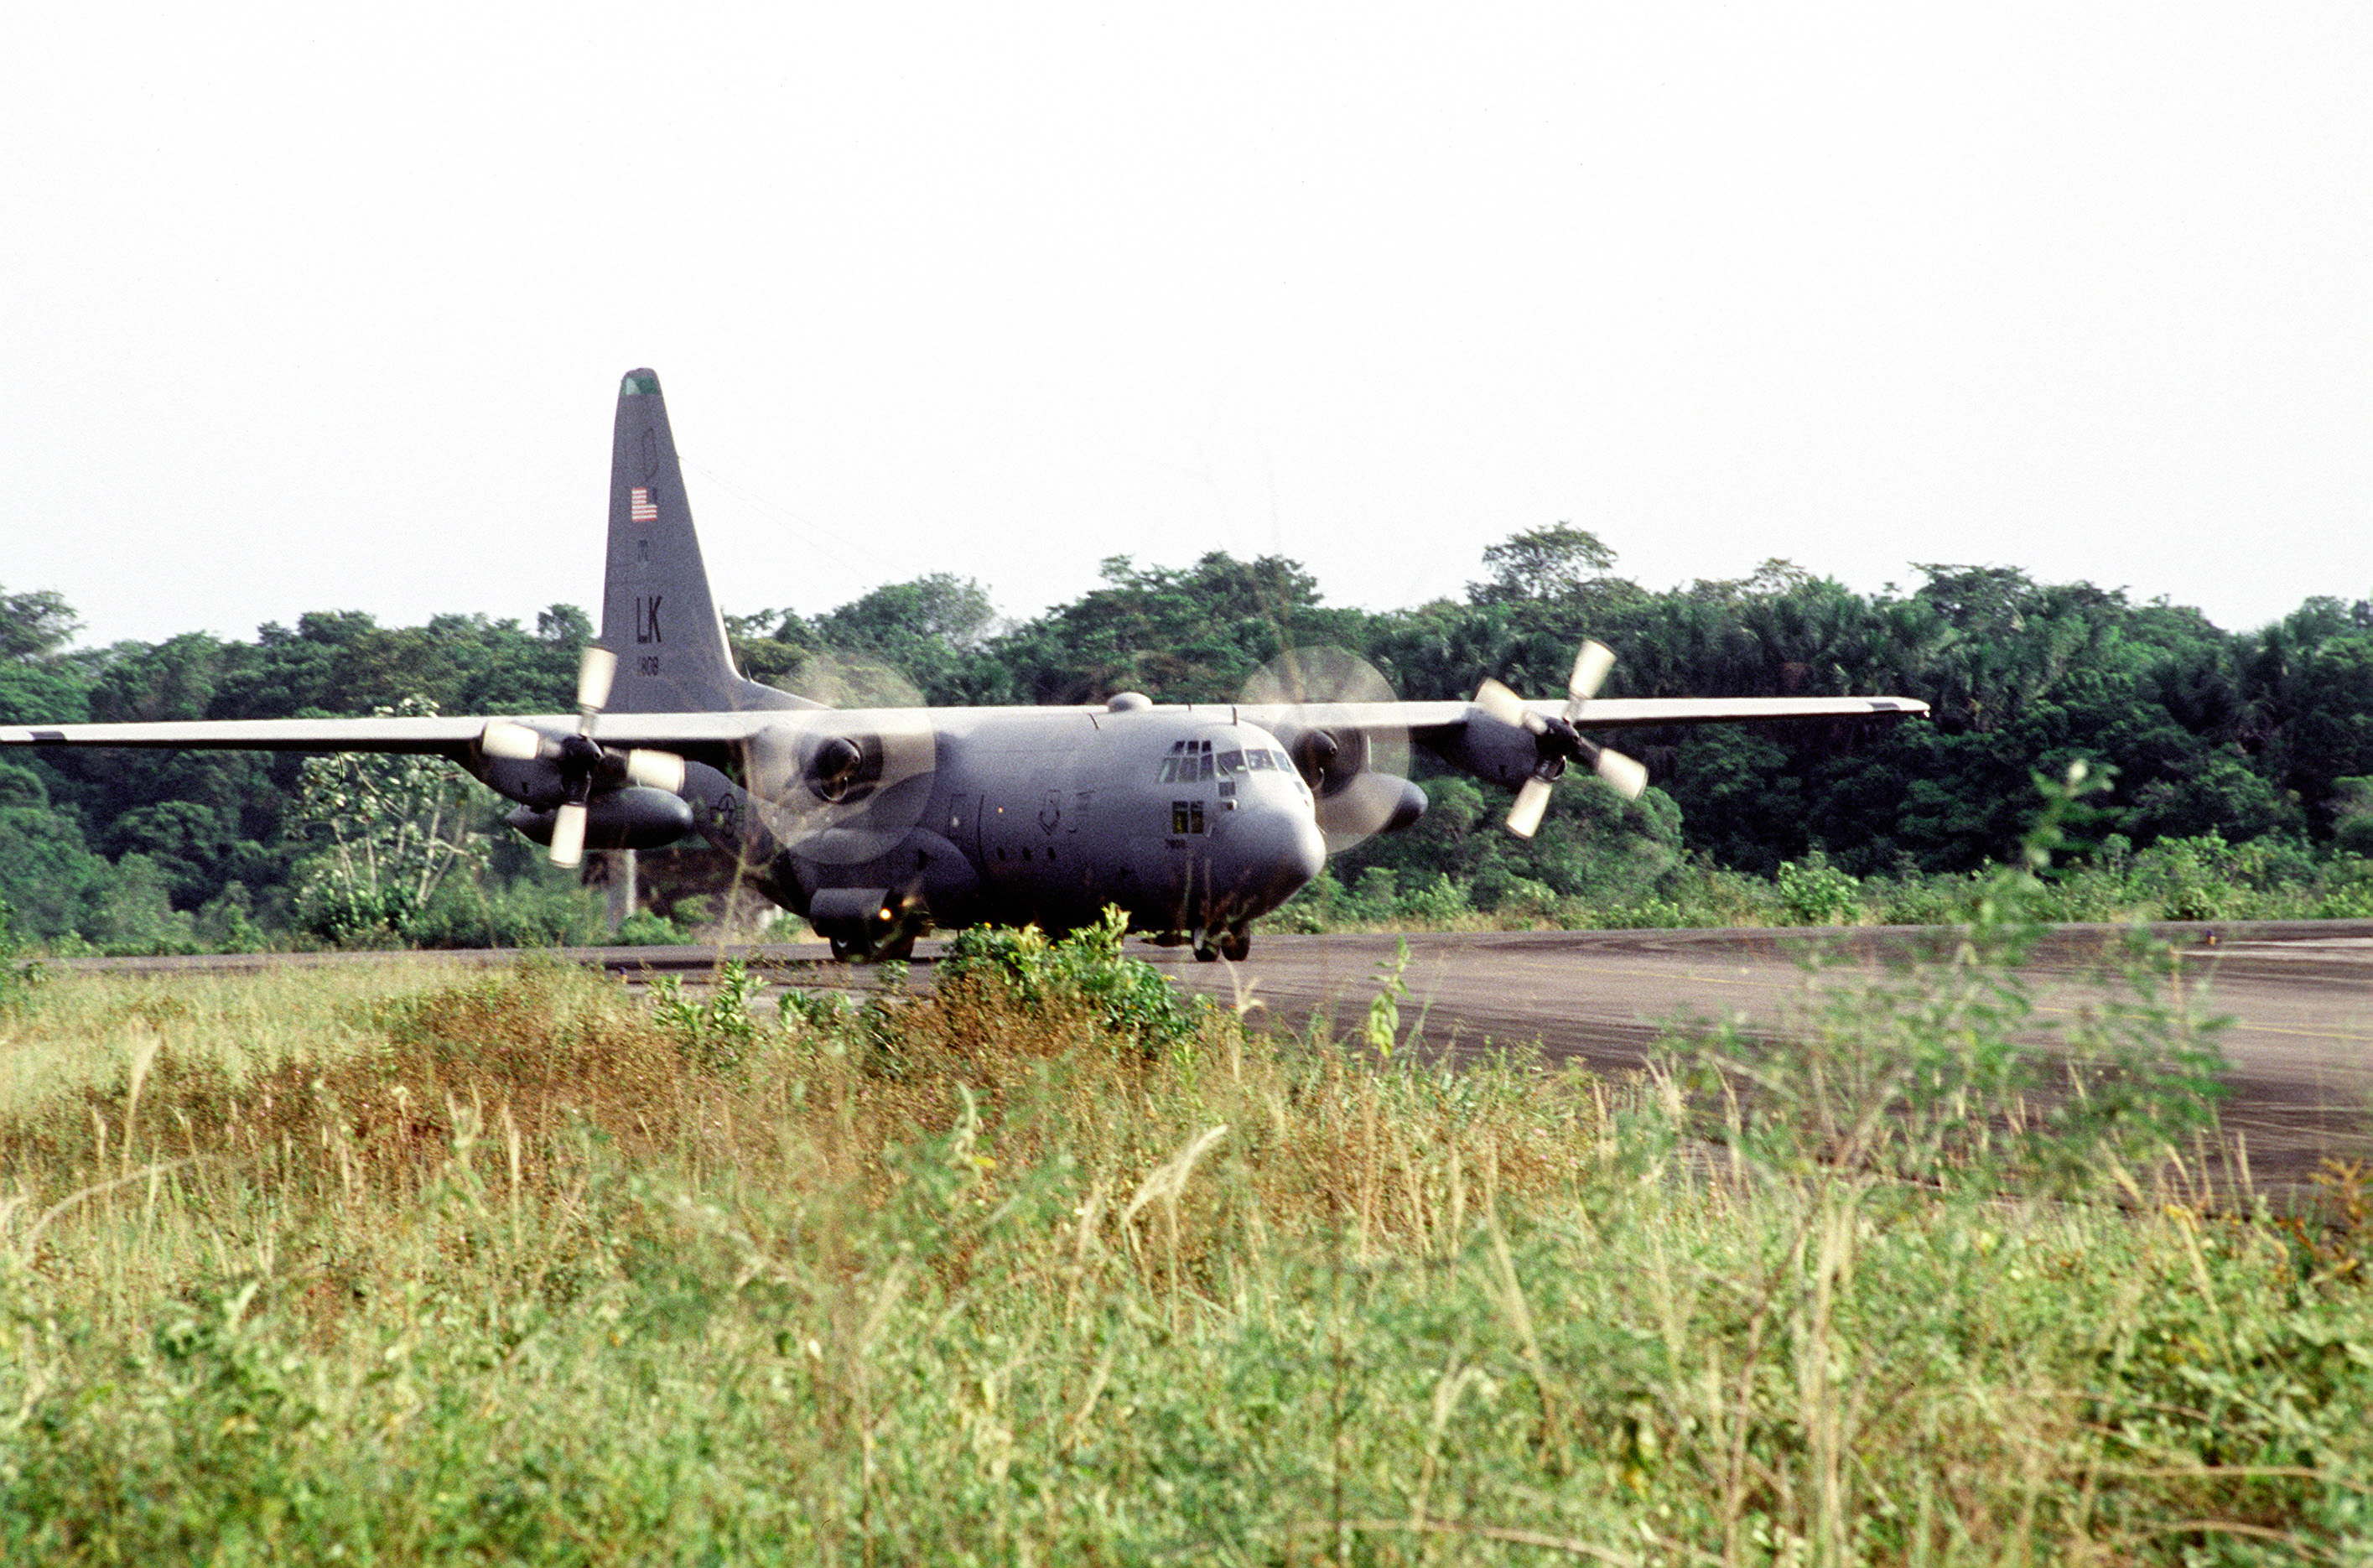 A C-130 Hercules of the 61st Airlift Squadron, Little Rock Air Force Base, Ark., taxis on the flightline of the Johan Adolf Penger Airport carrying supplies and personnel.(Exact date unknown)